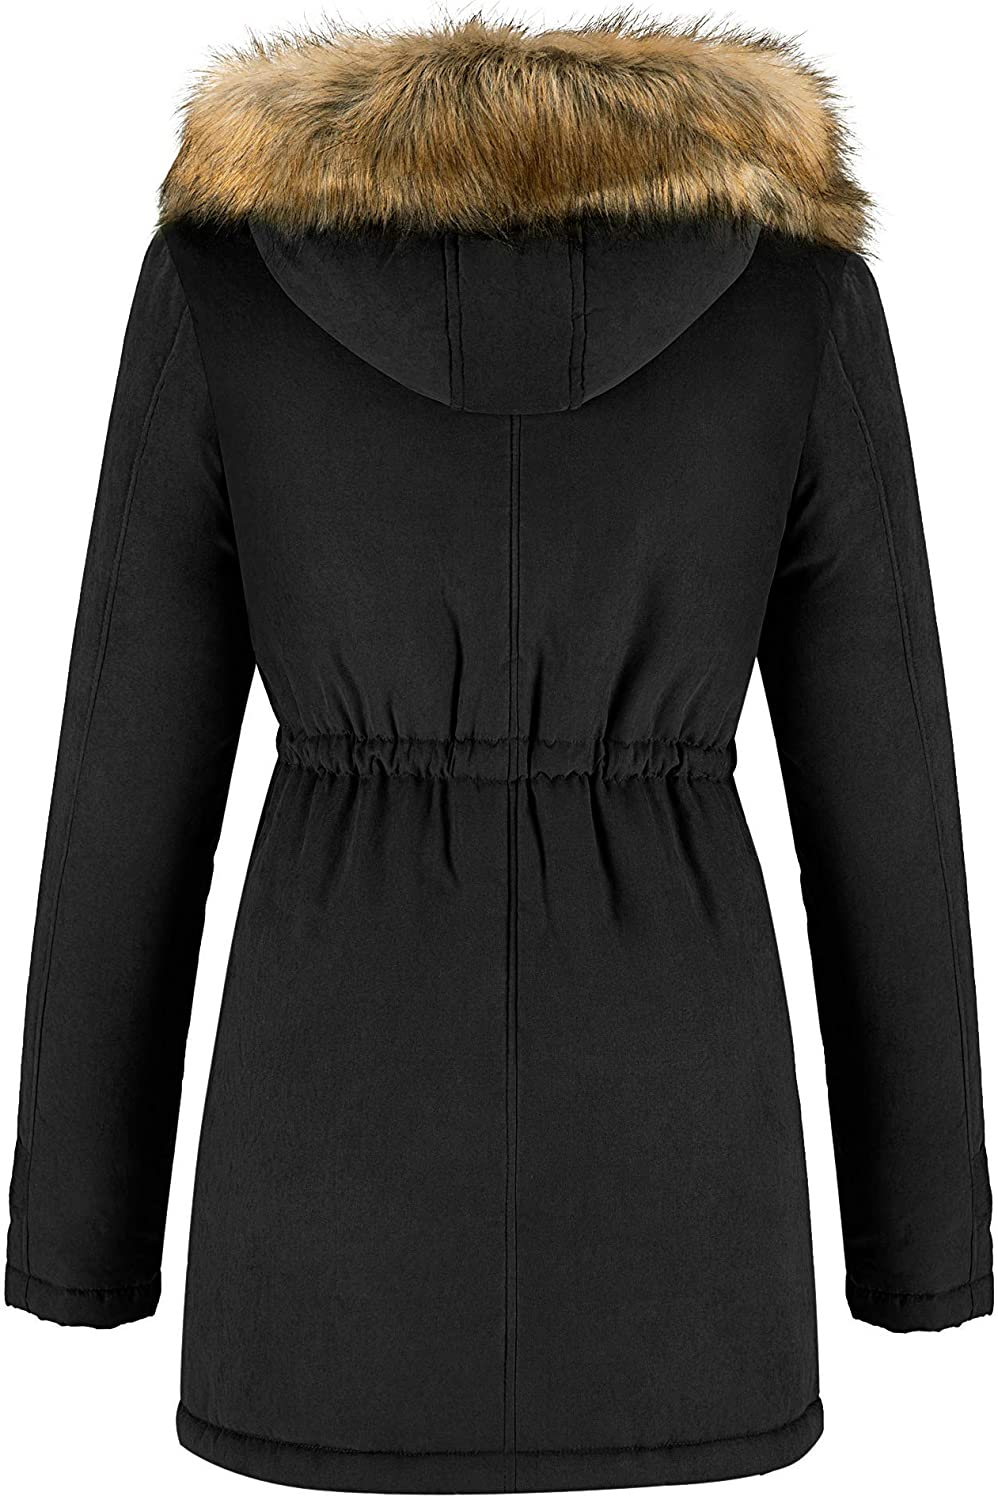 Womens Quilted Thicken Puffer Jacket,Memela Womens Hooded Warm Winter Coat Slim Cotton Padded Jackets Down Coat Outerwear